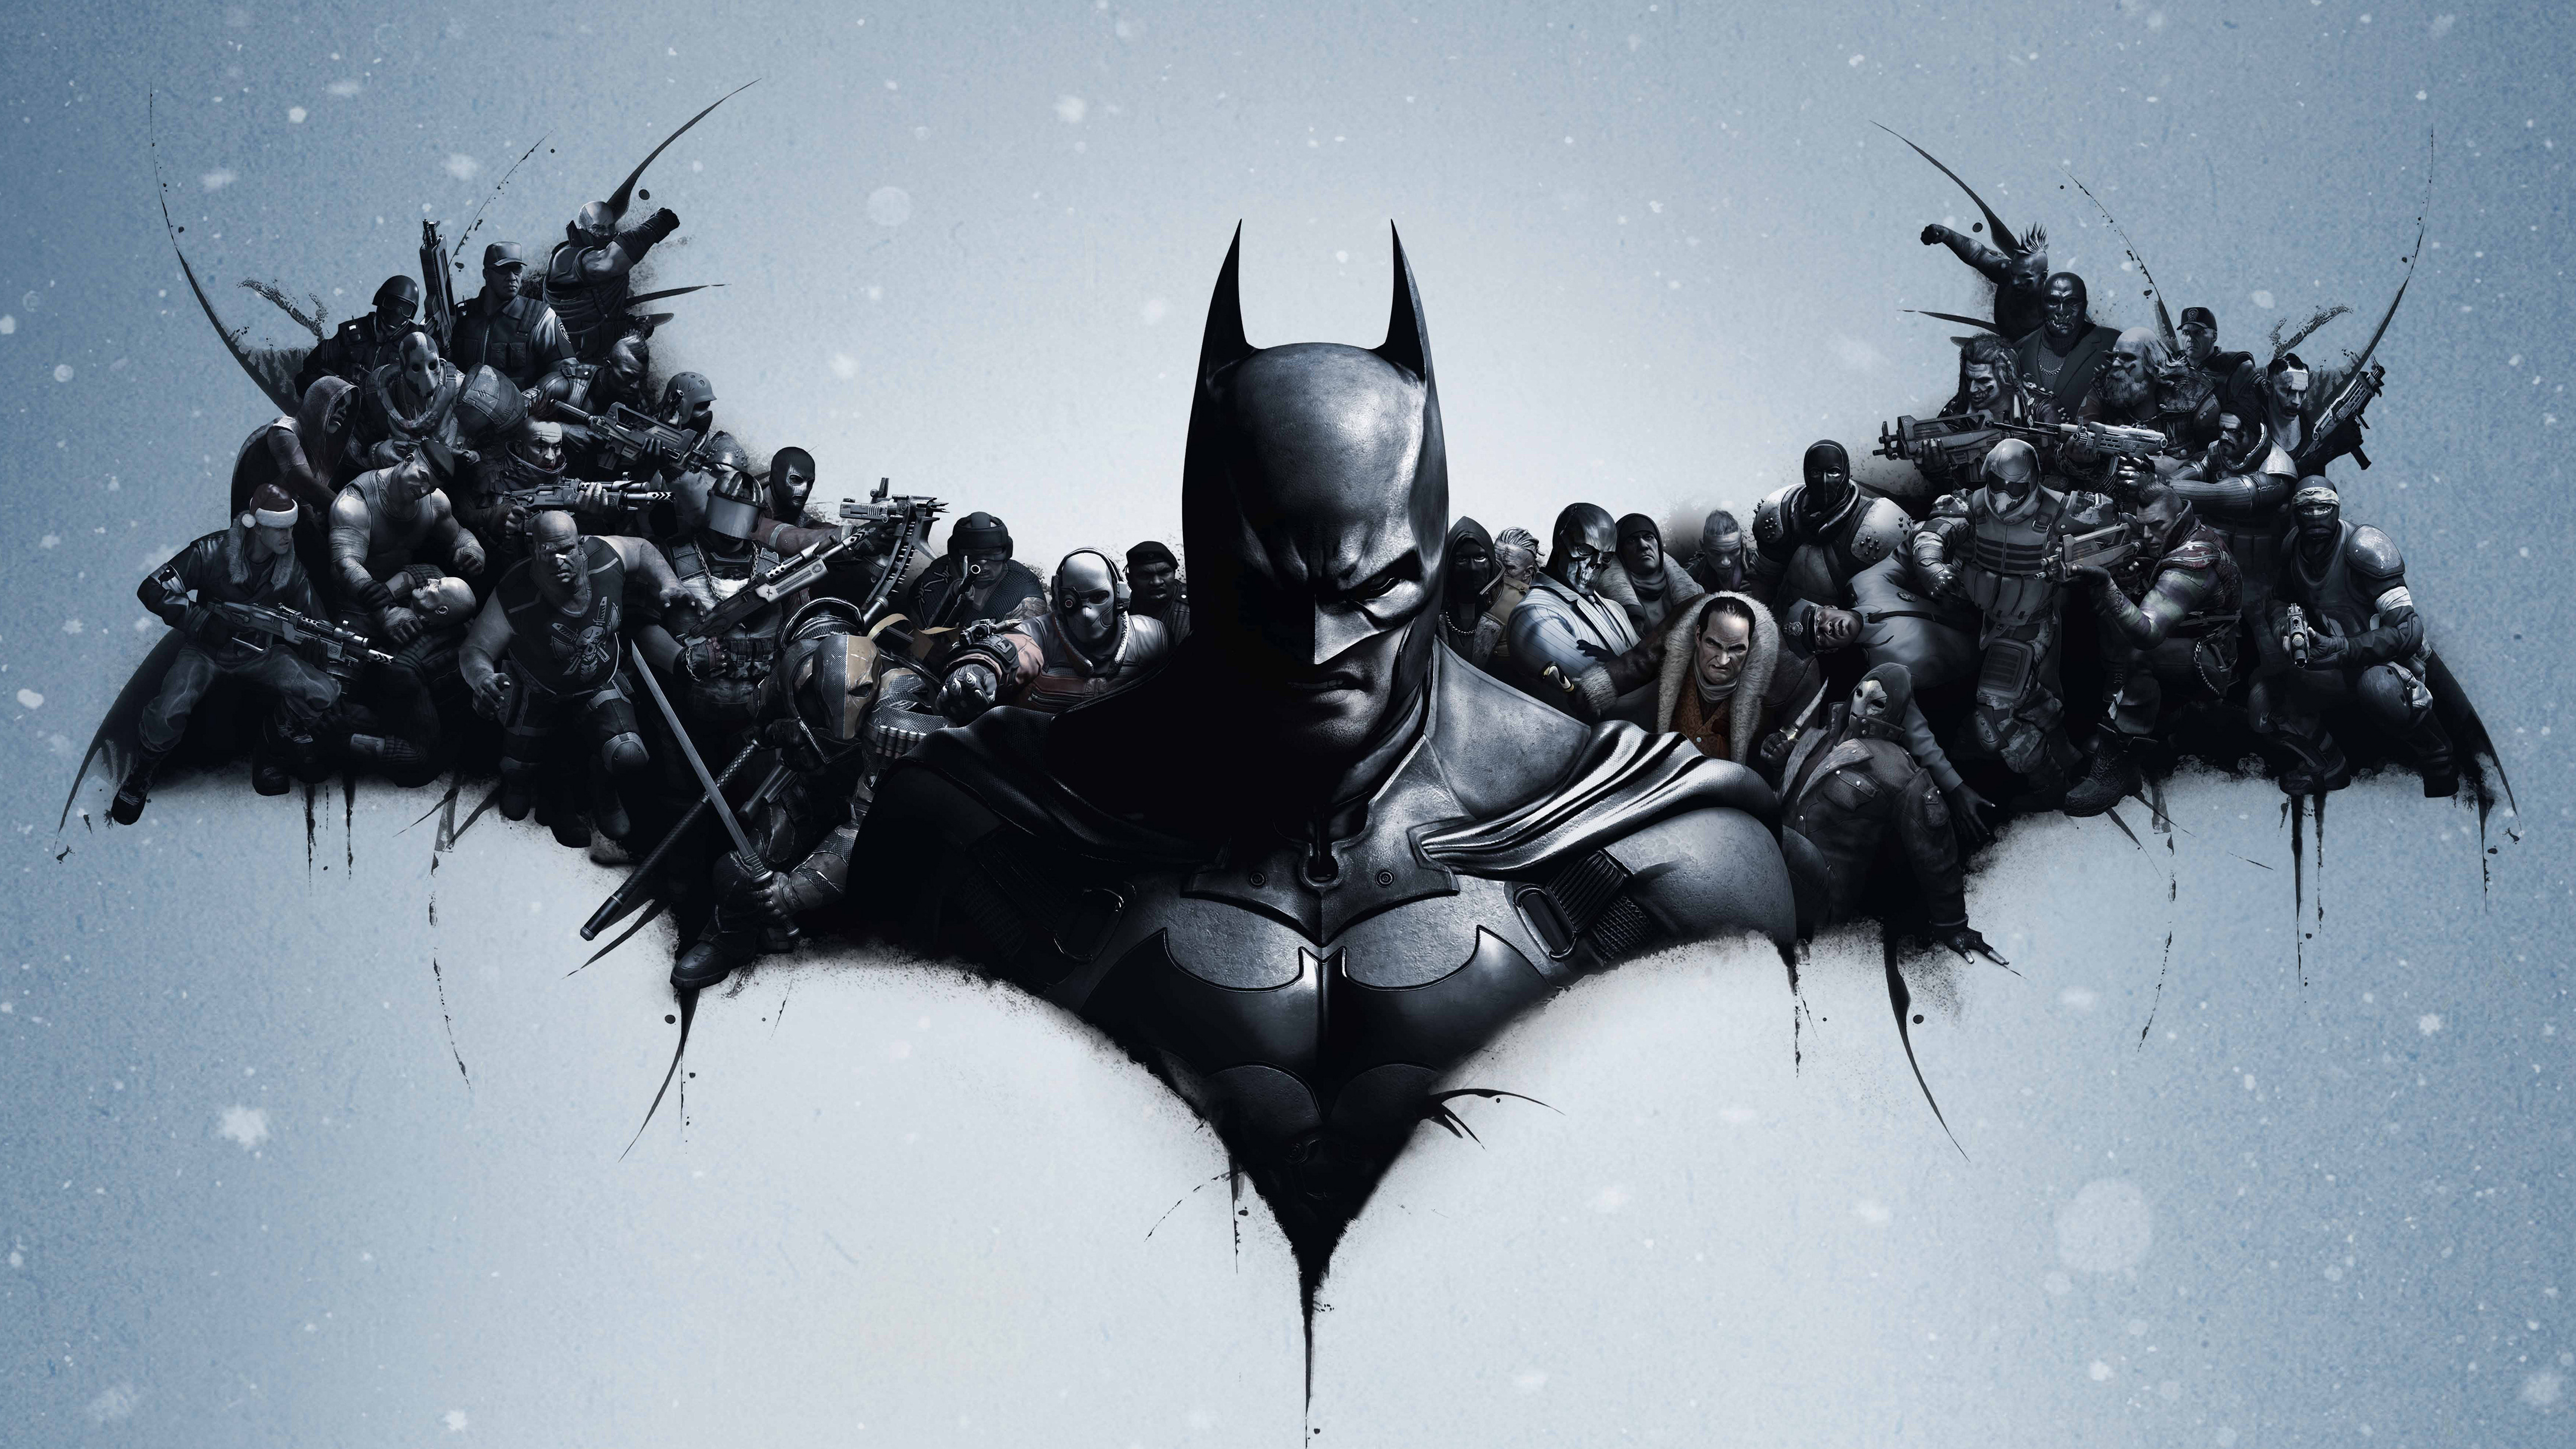 Batman Wallpaper Hd 4k 5120x2880 Wallpaper Teahub Io